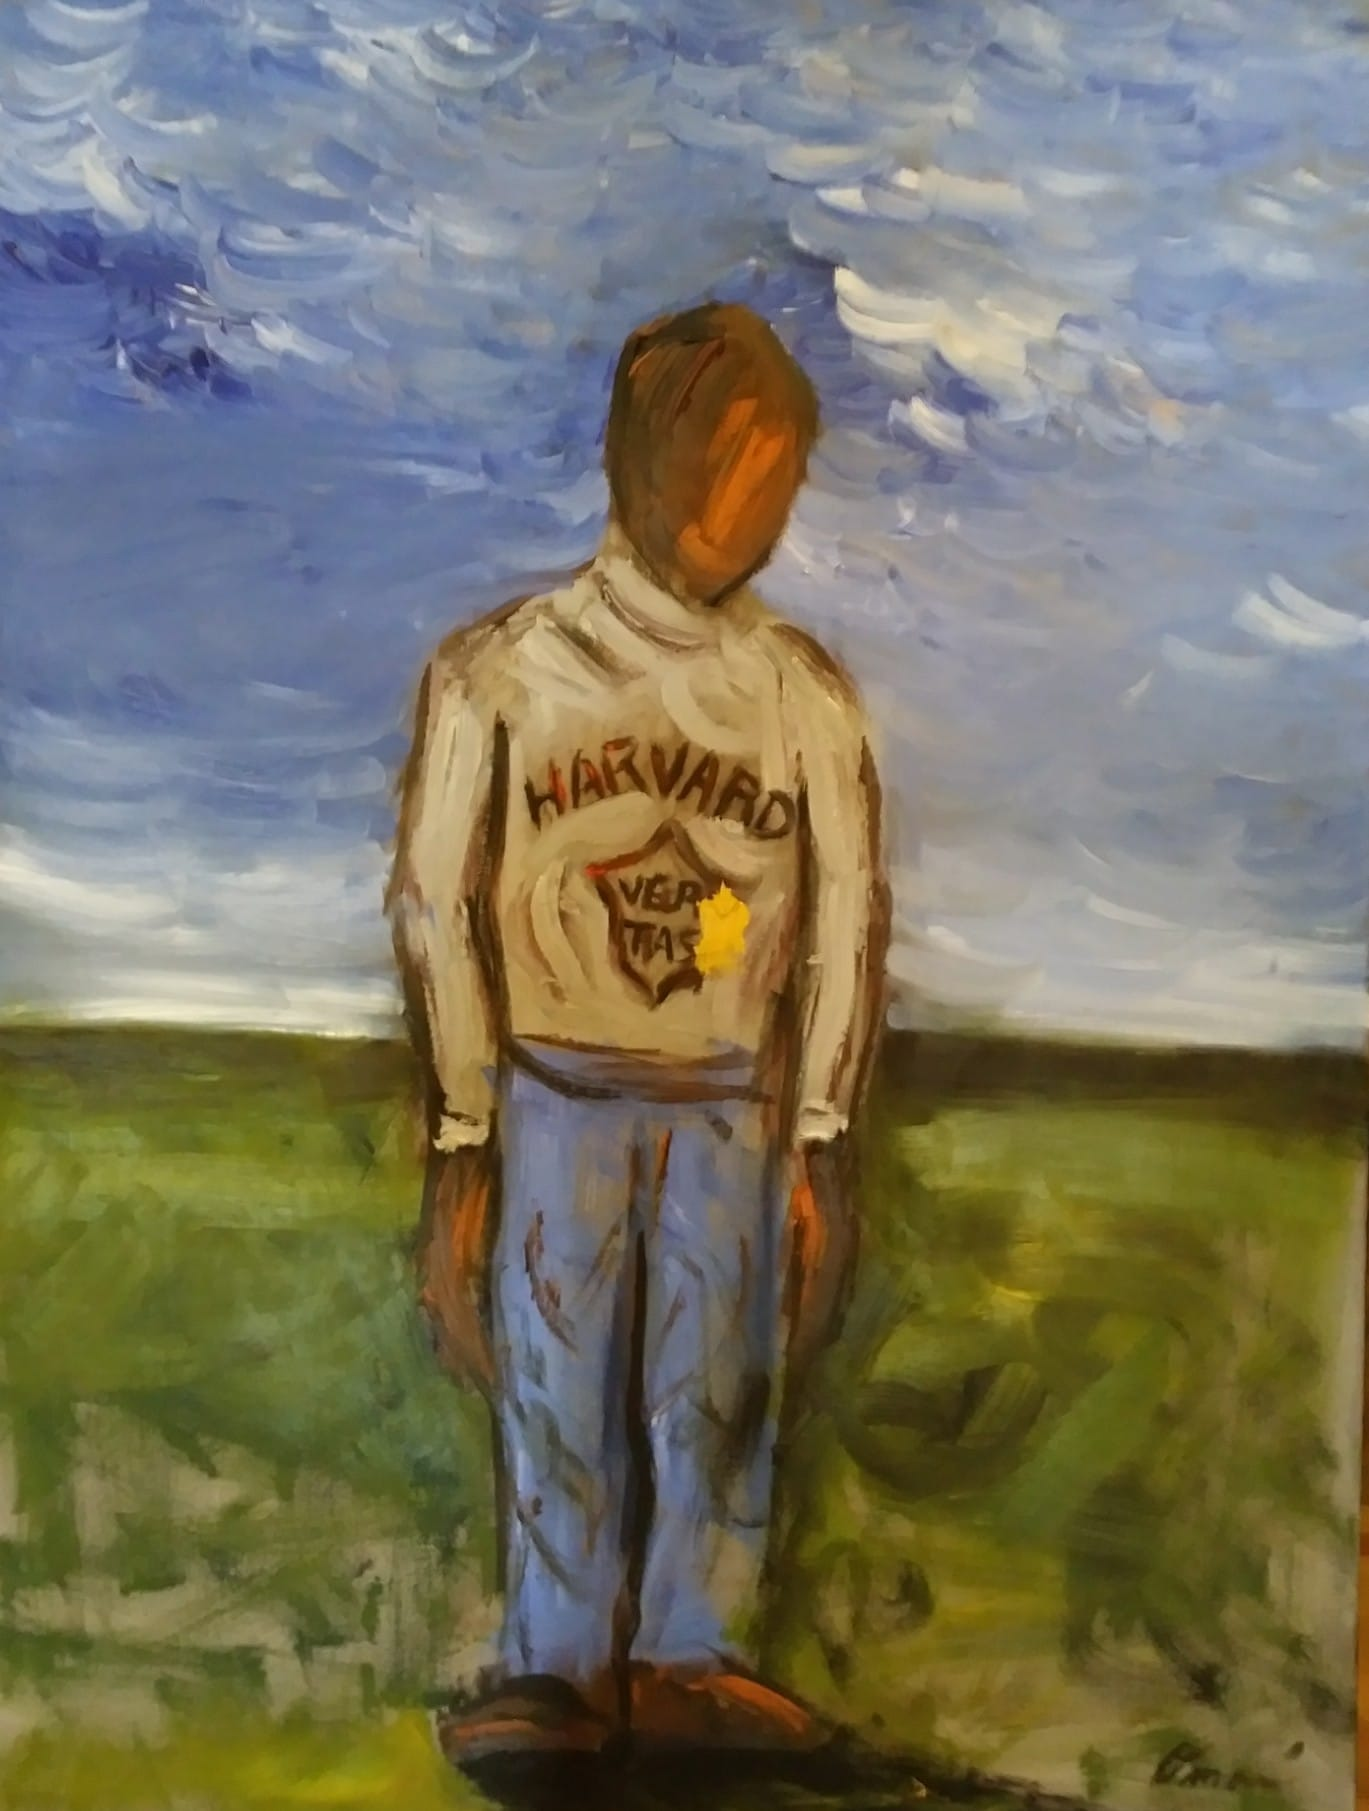 Painting by Omari Booker of himself as a child wearing his dad's Harvard sweater.